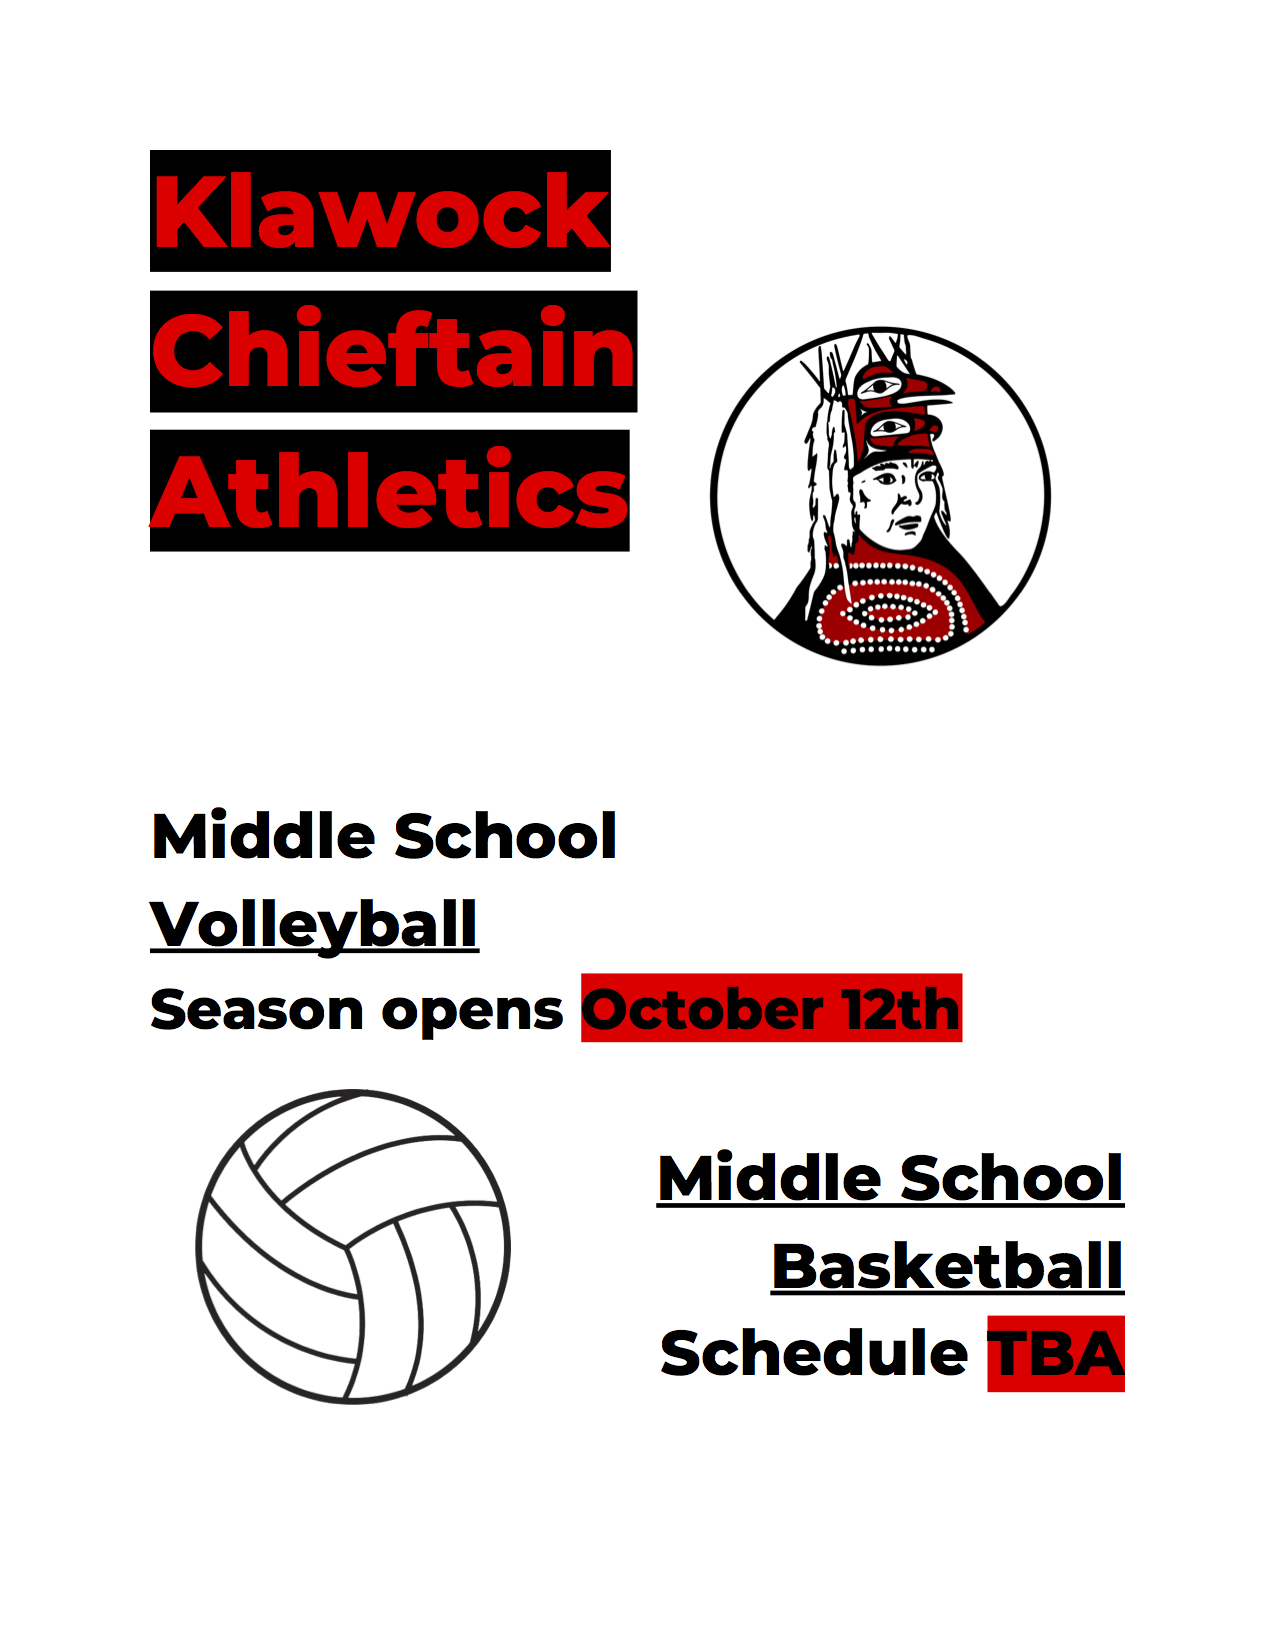 Klawock Chieftains Athletics Middle School Volleyball Season Opens October 12th Middle School Basketball Schedule TBA